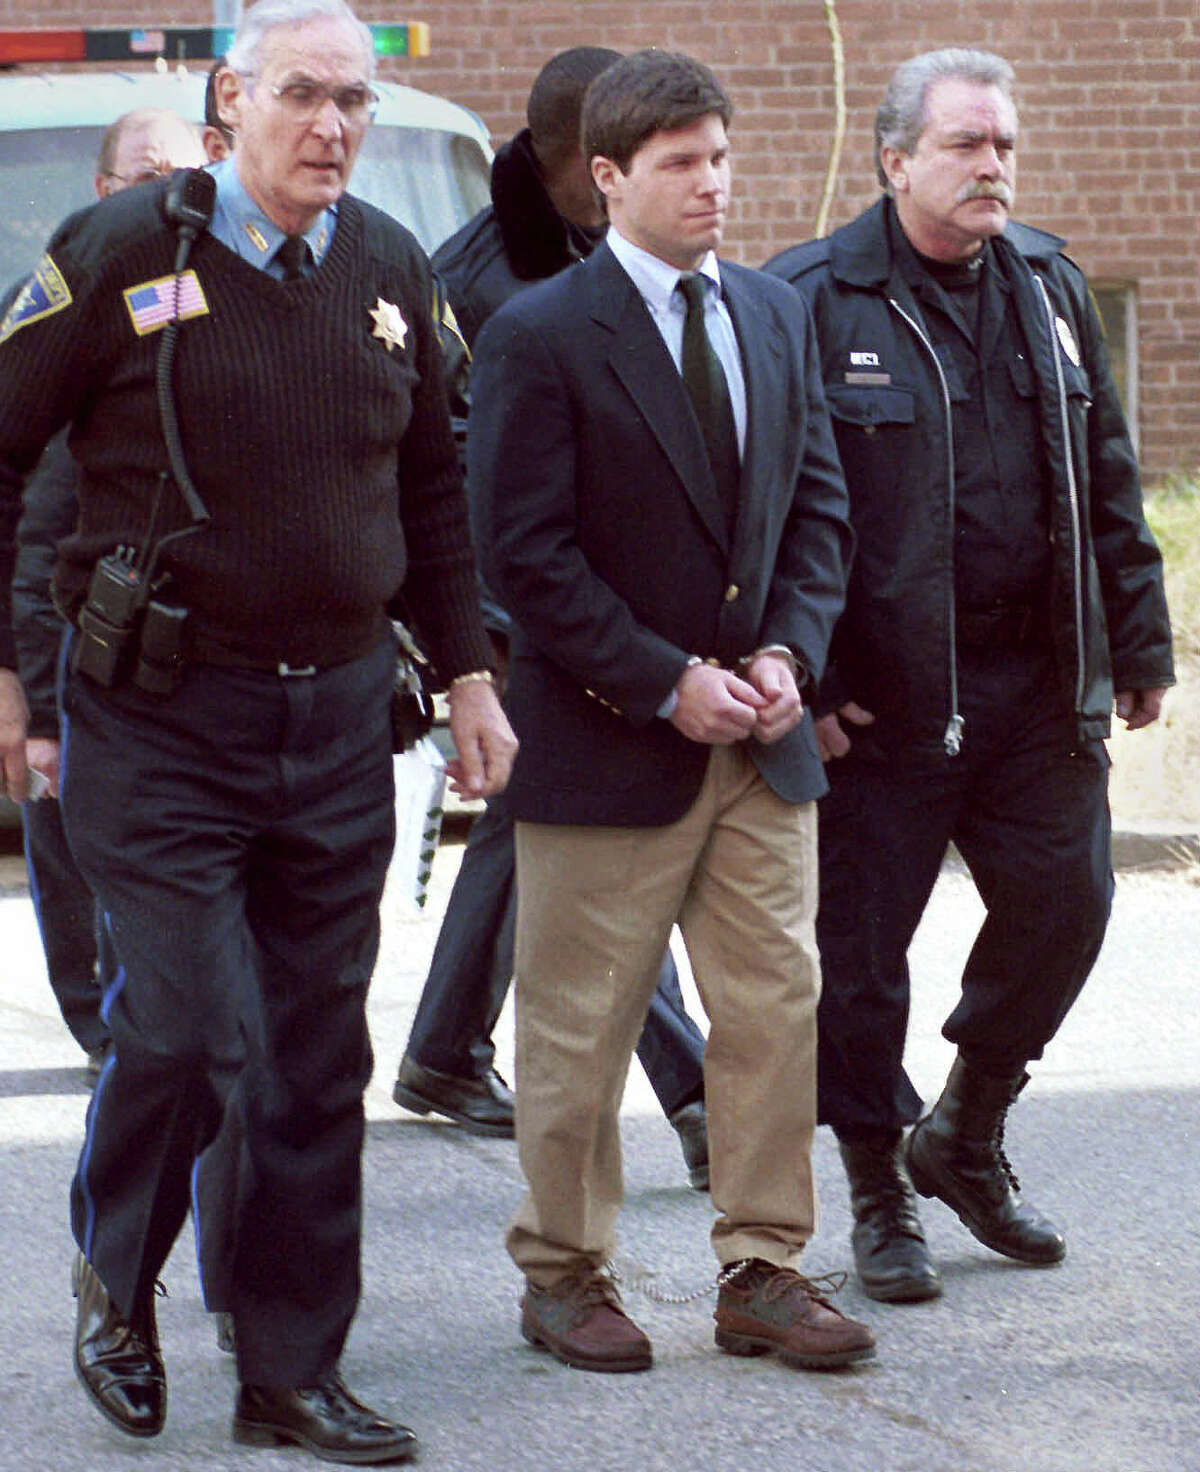 Convicted rapist Alex Kelly, center, is led out of Stamford Superior Court on Dec. 23, 1998. Kelly, who said he was a changed man who is sorry for what he has done during an unsuccesful 2005 bid for parole. But one of his victims says the former international fugitive urged the parole board to keep Kelly behind bars, saying she lived in fear while Kelly enjoyed skiing and mountain climbing in Europe.